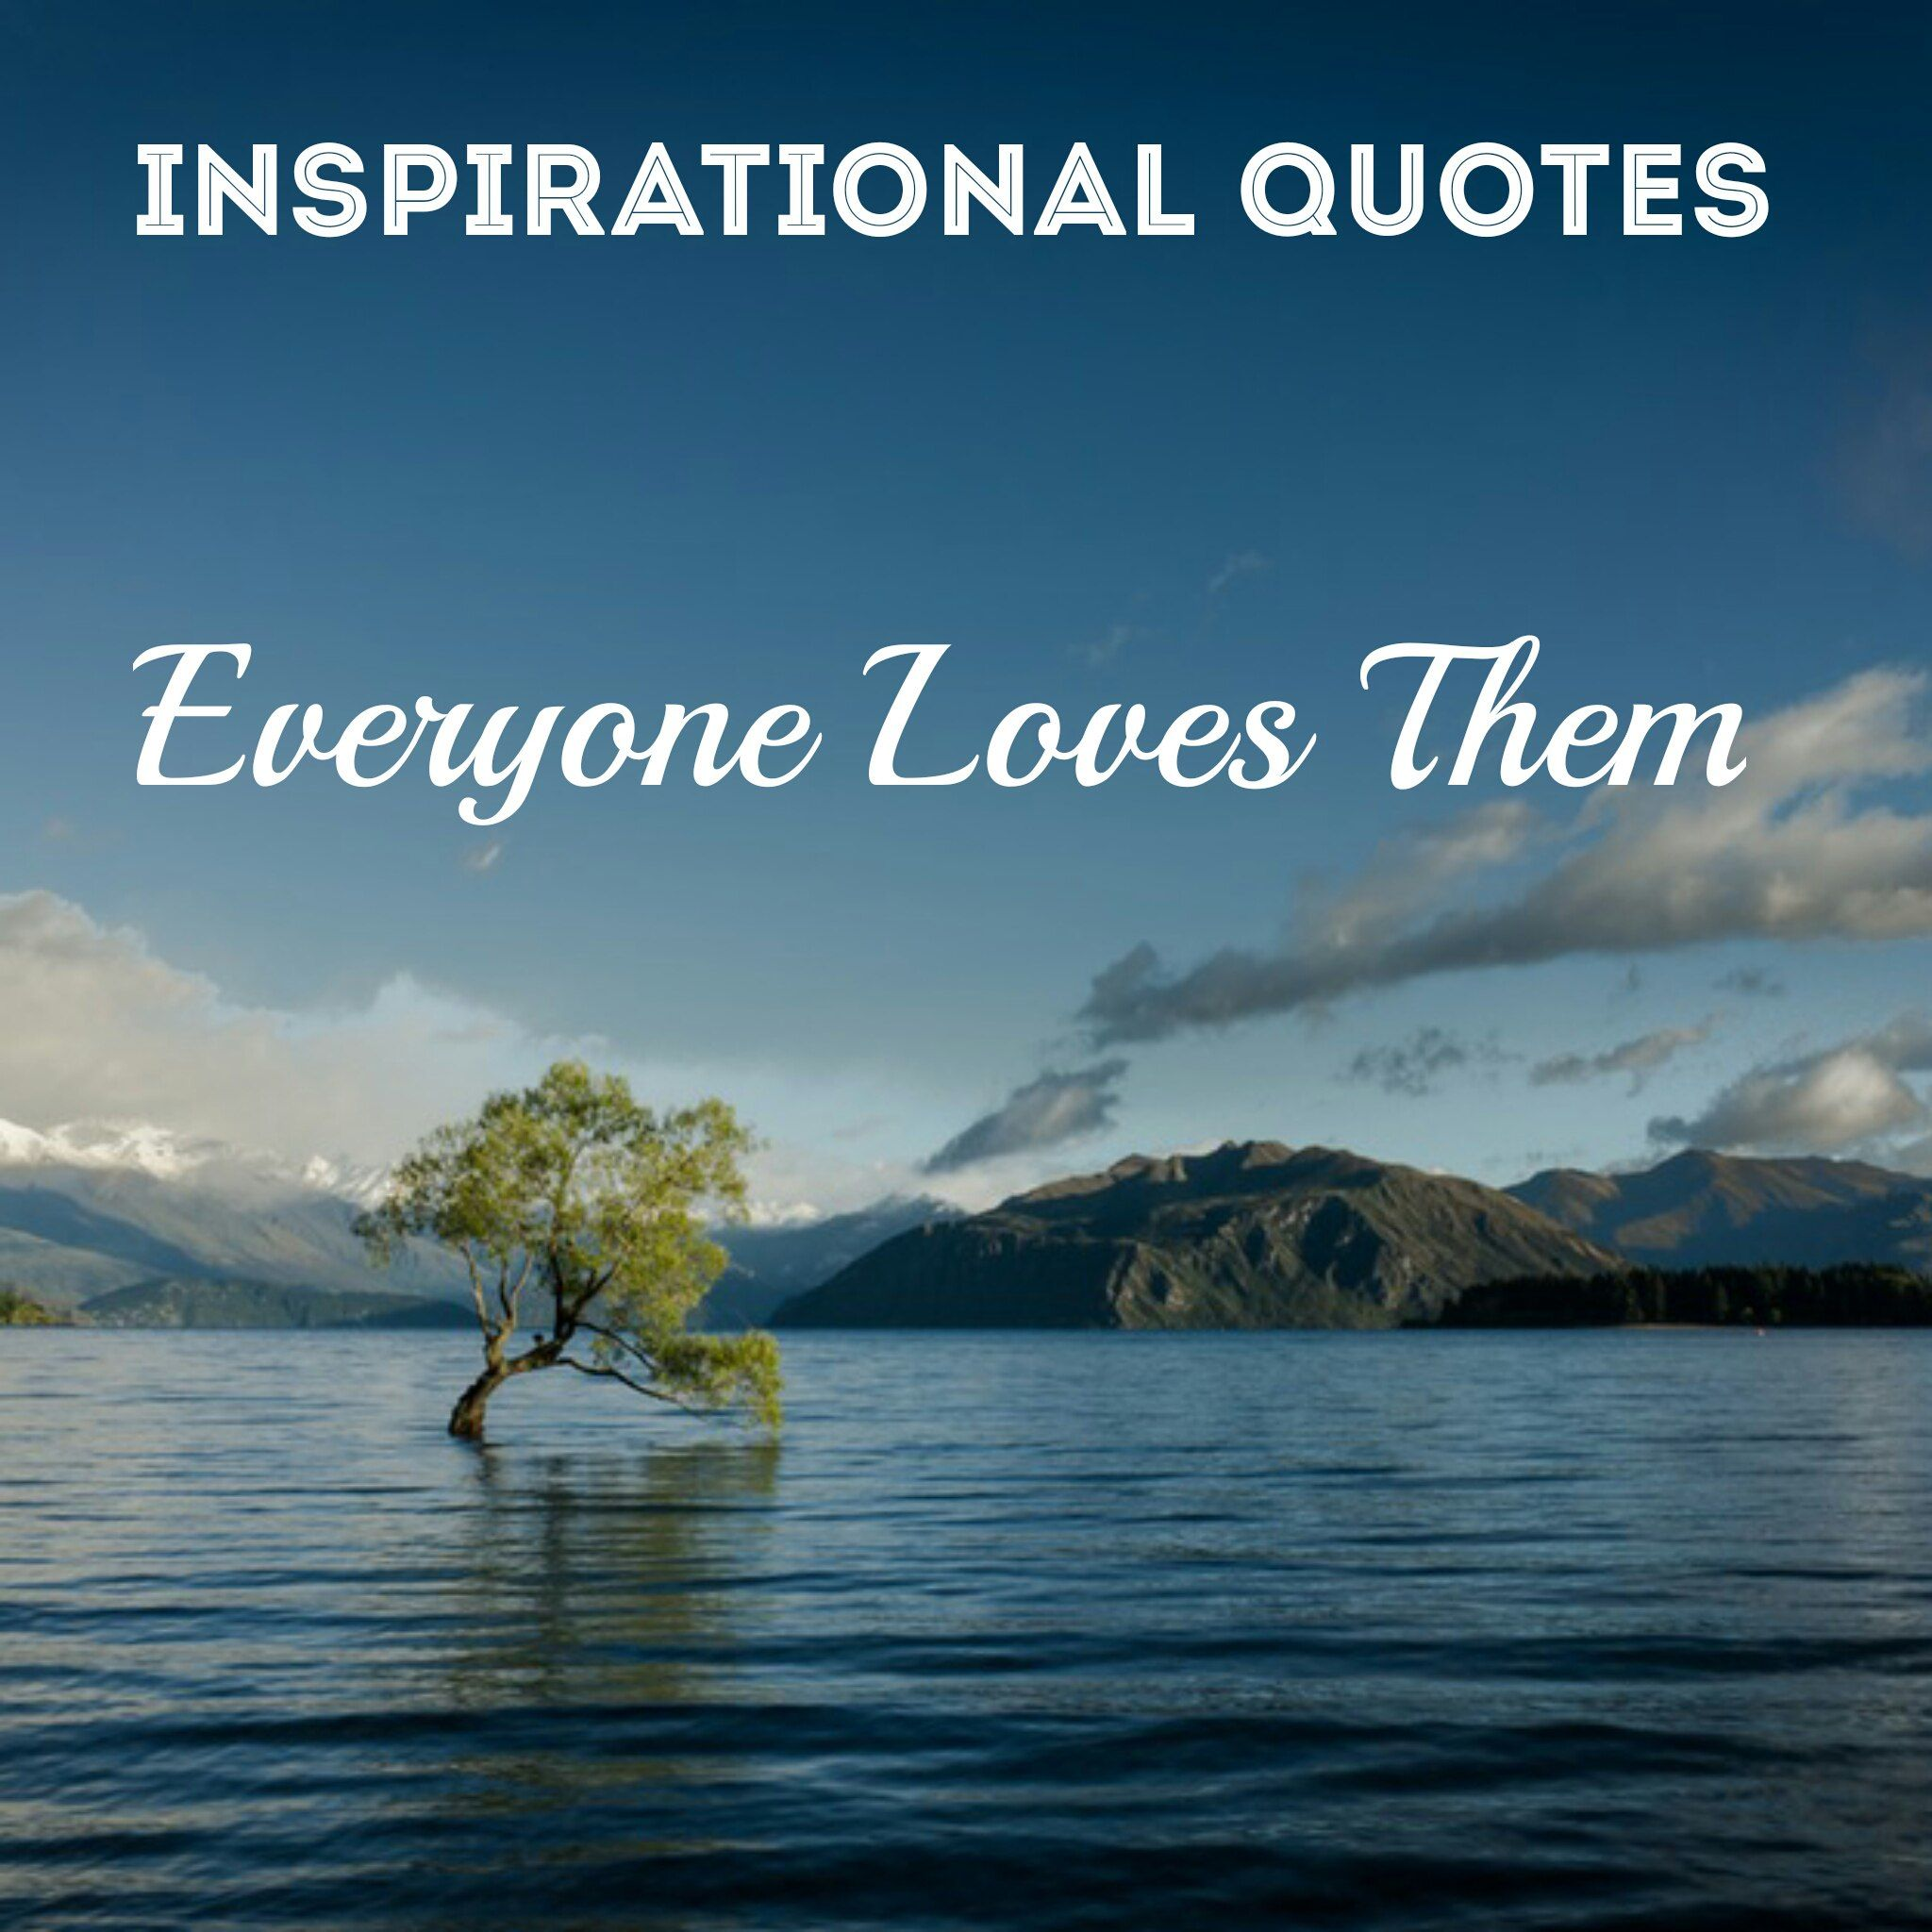 Quote Of The Day Inspiration 154 Best Inspirational Quotes & Sayings Of All Time